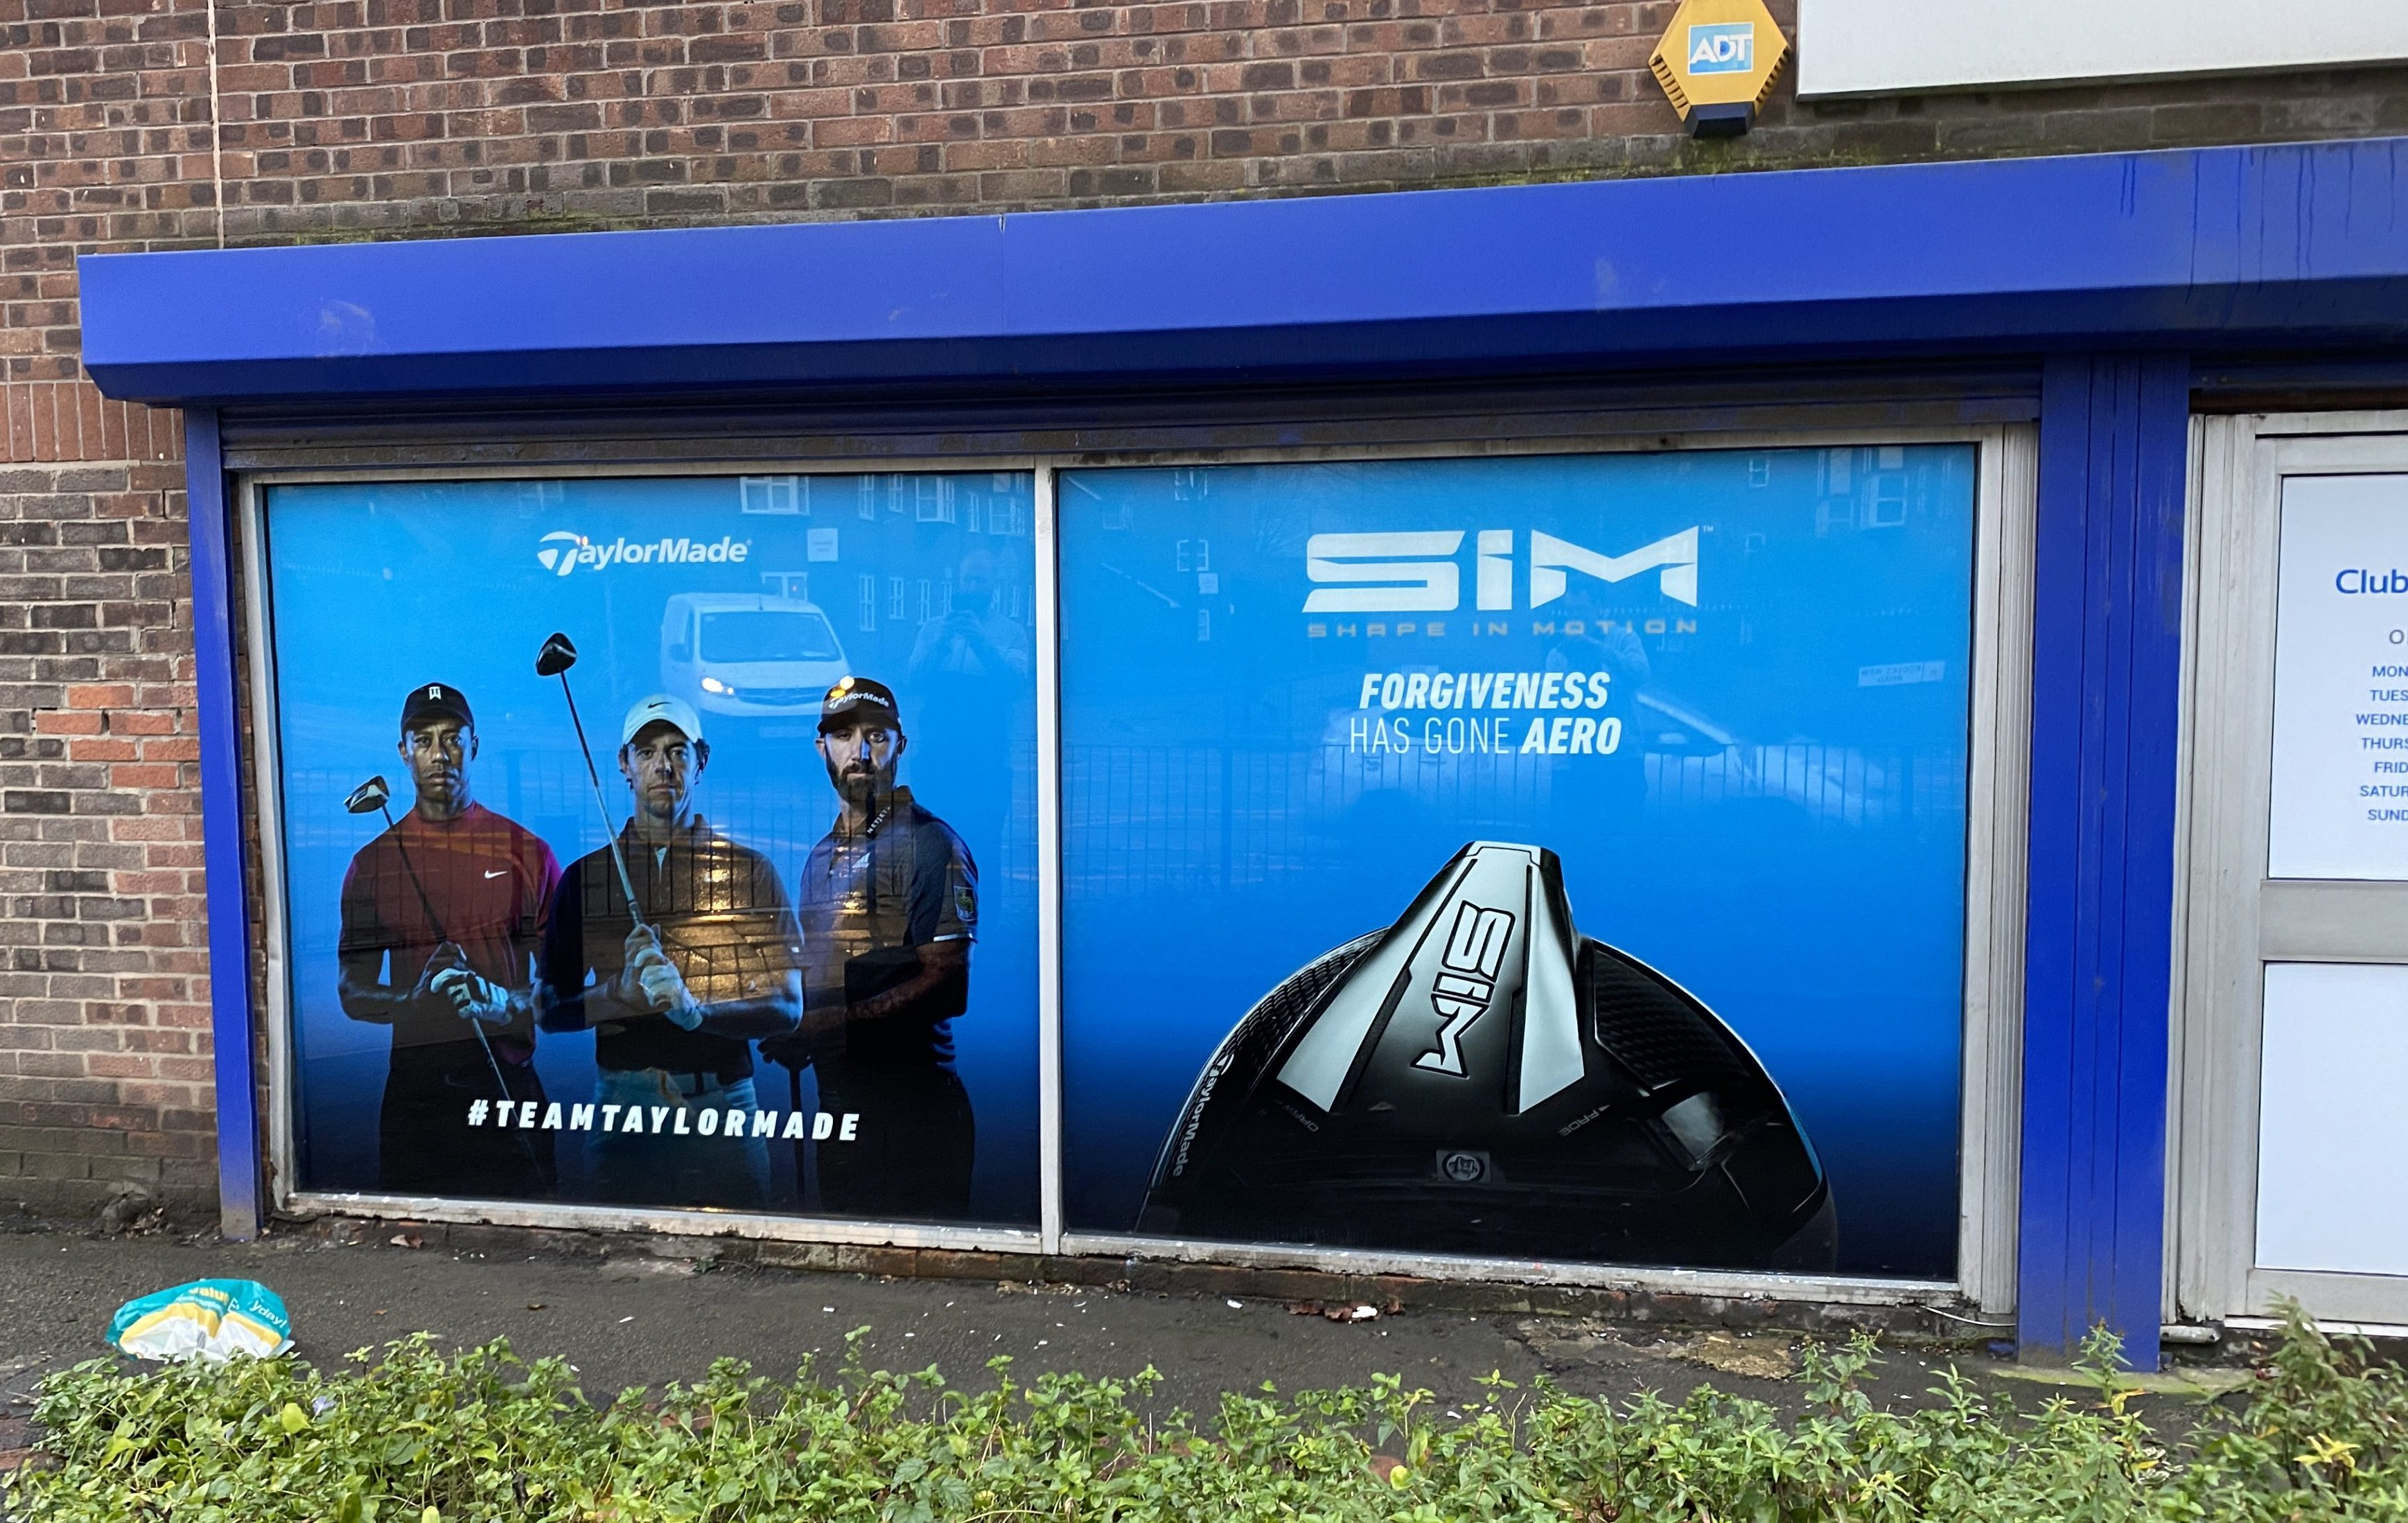 TaylorMade window signs